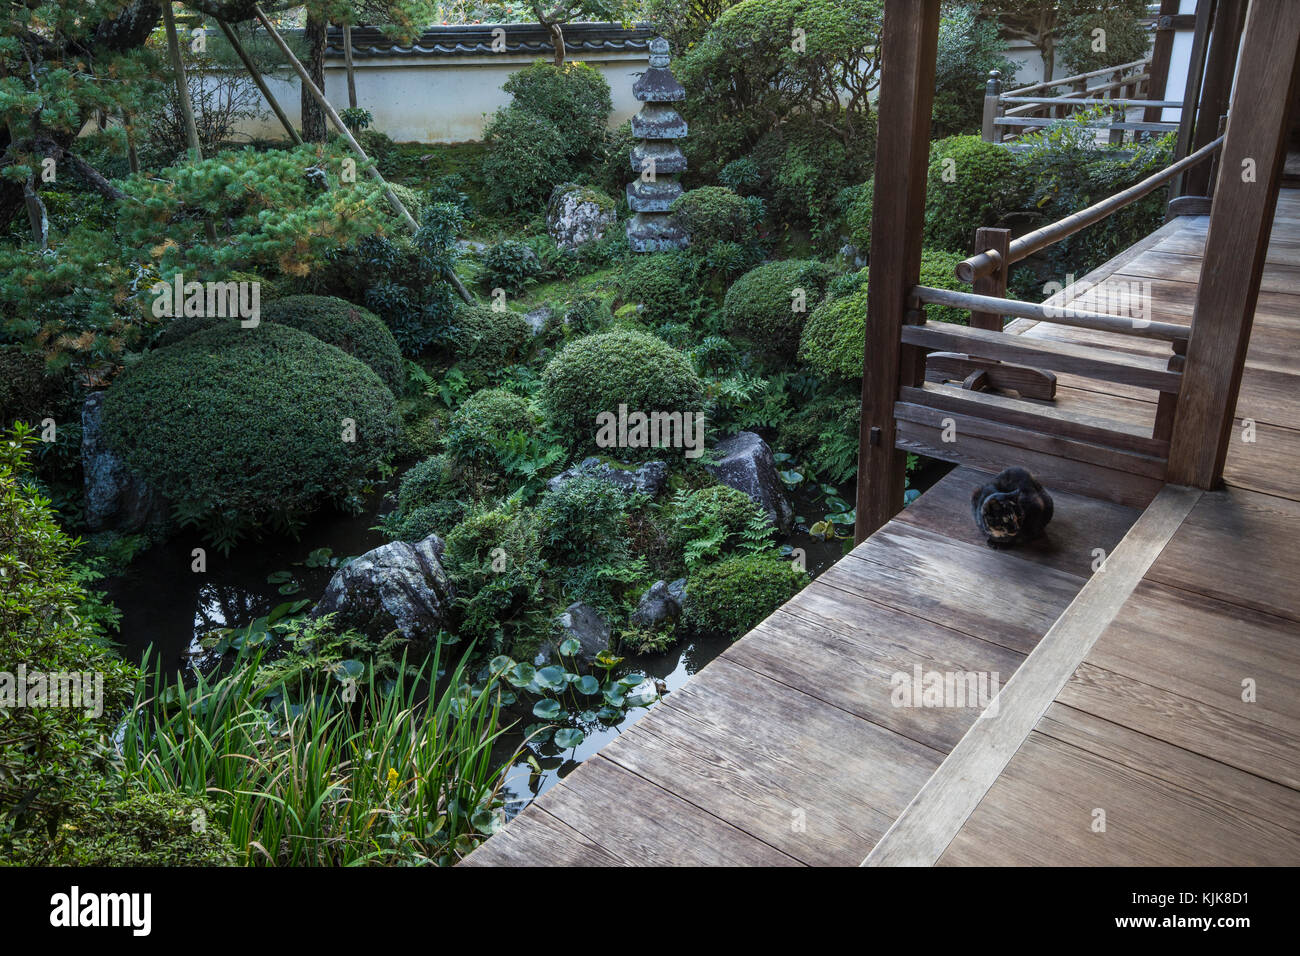 Chogakuji Temple Tsubo Niwa Garden - Chogakuji Temple is said to have been founded around 824 by Kobo Daishi,.  - Stock Image